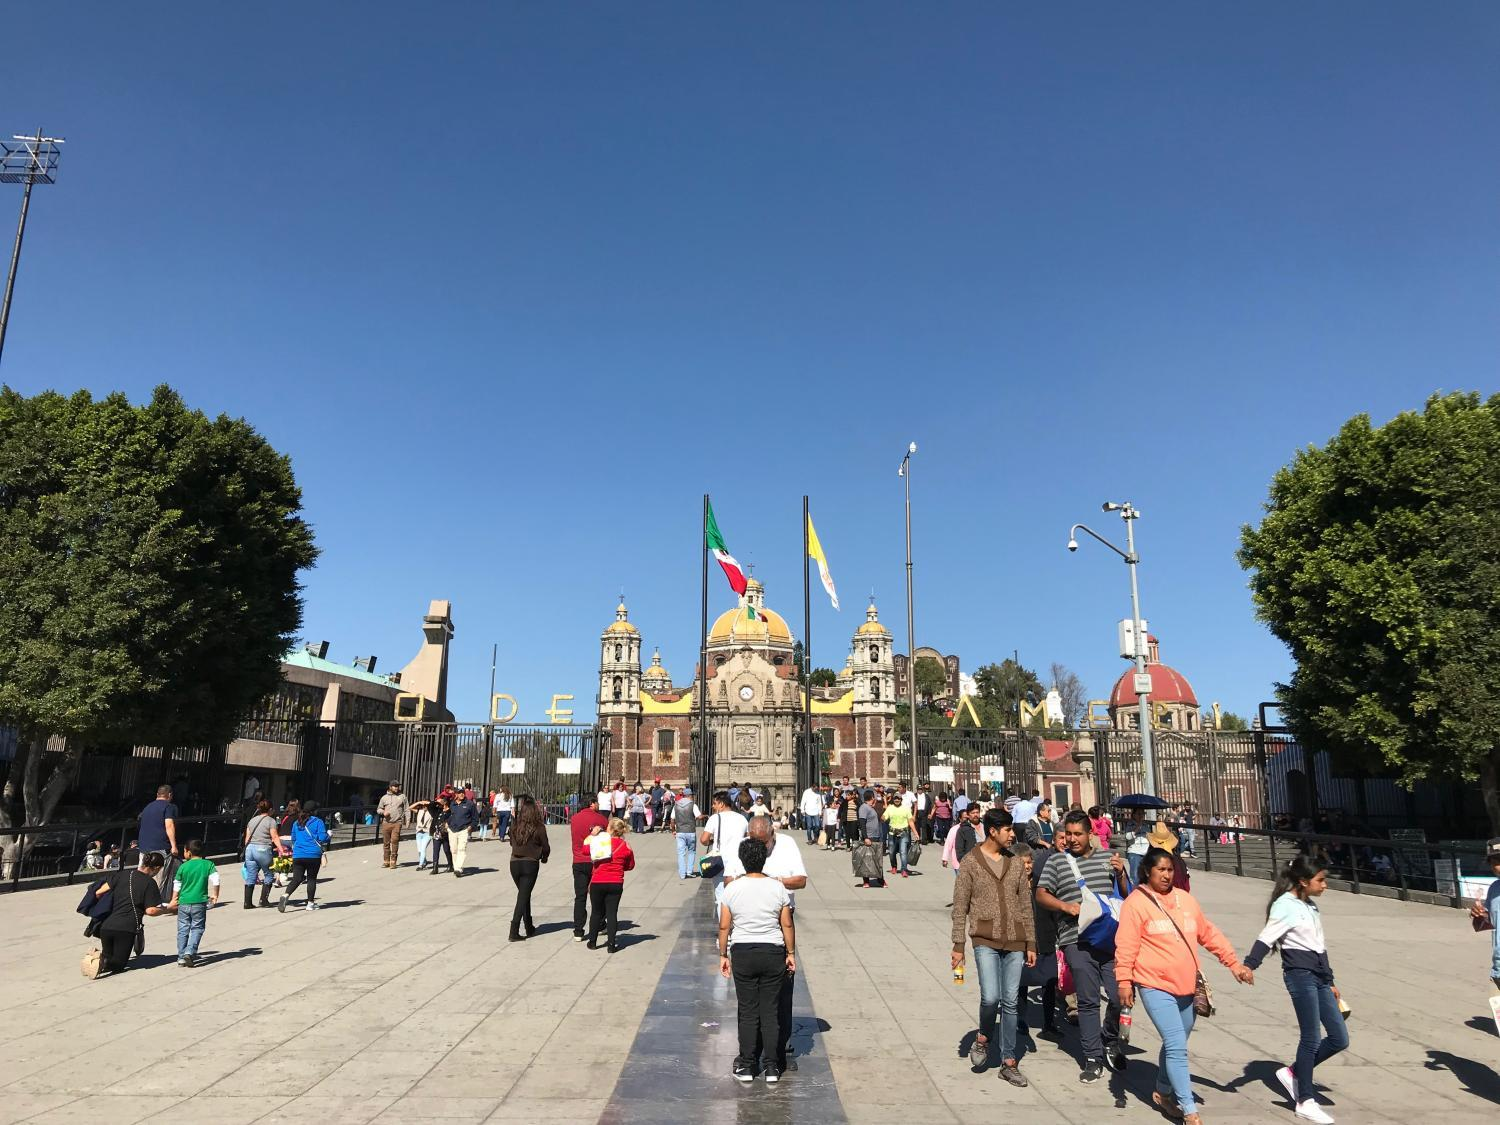 A pedestrian street outside the the Basilica of Our Lady of Guadalupe in Mexico City